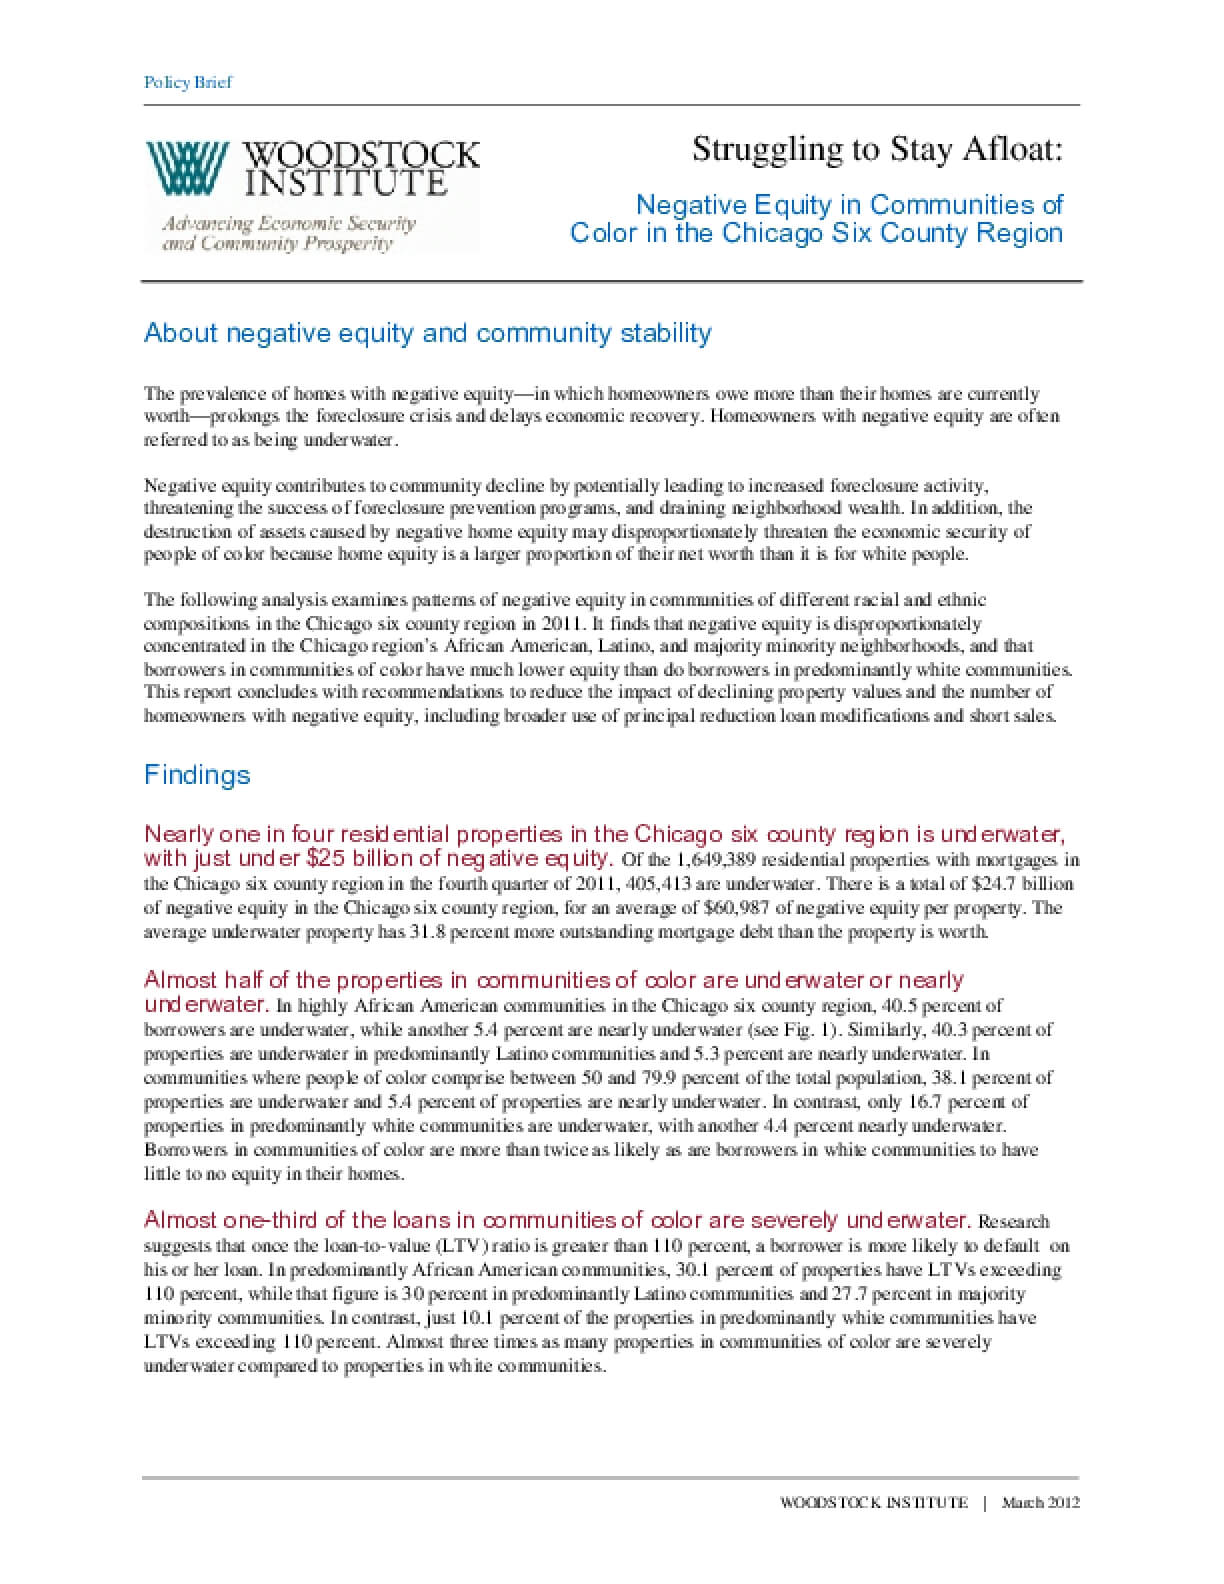 Fact Sheet:  Negative Equity in Communities of Color in the Chicago Six County Region